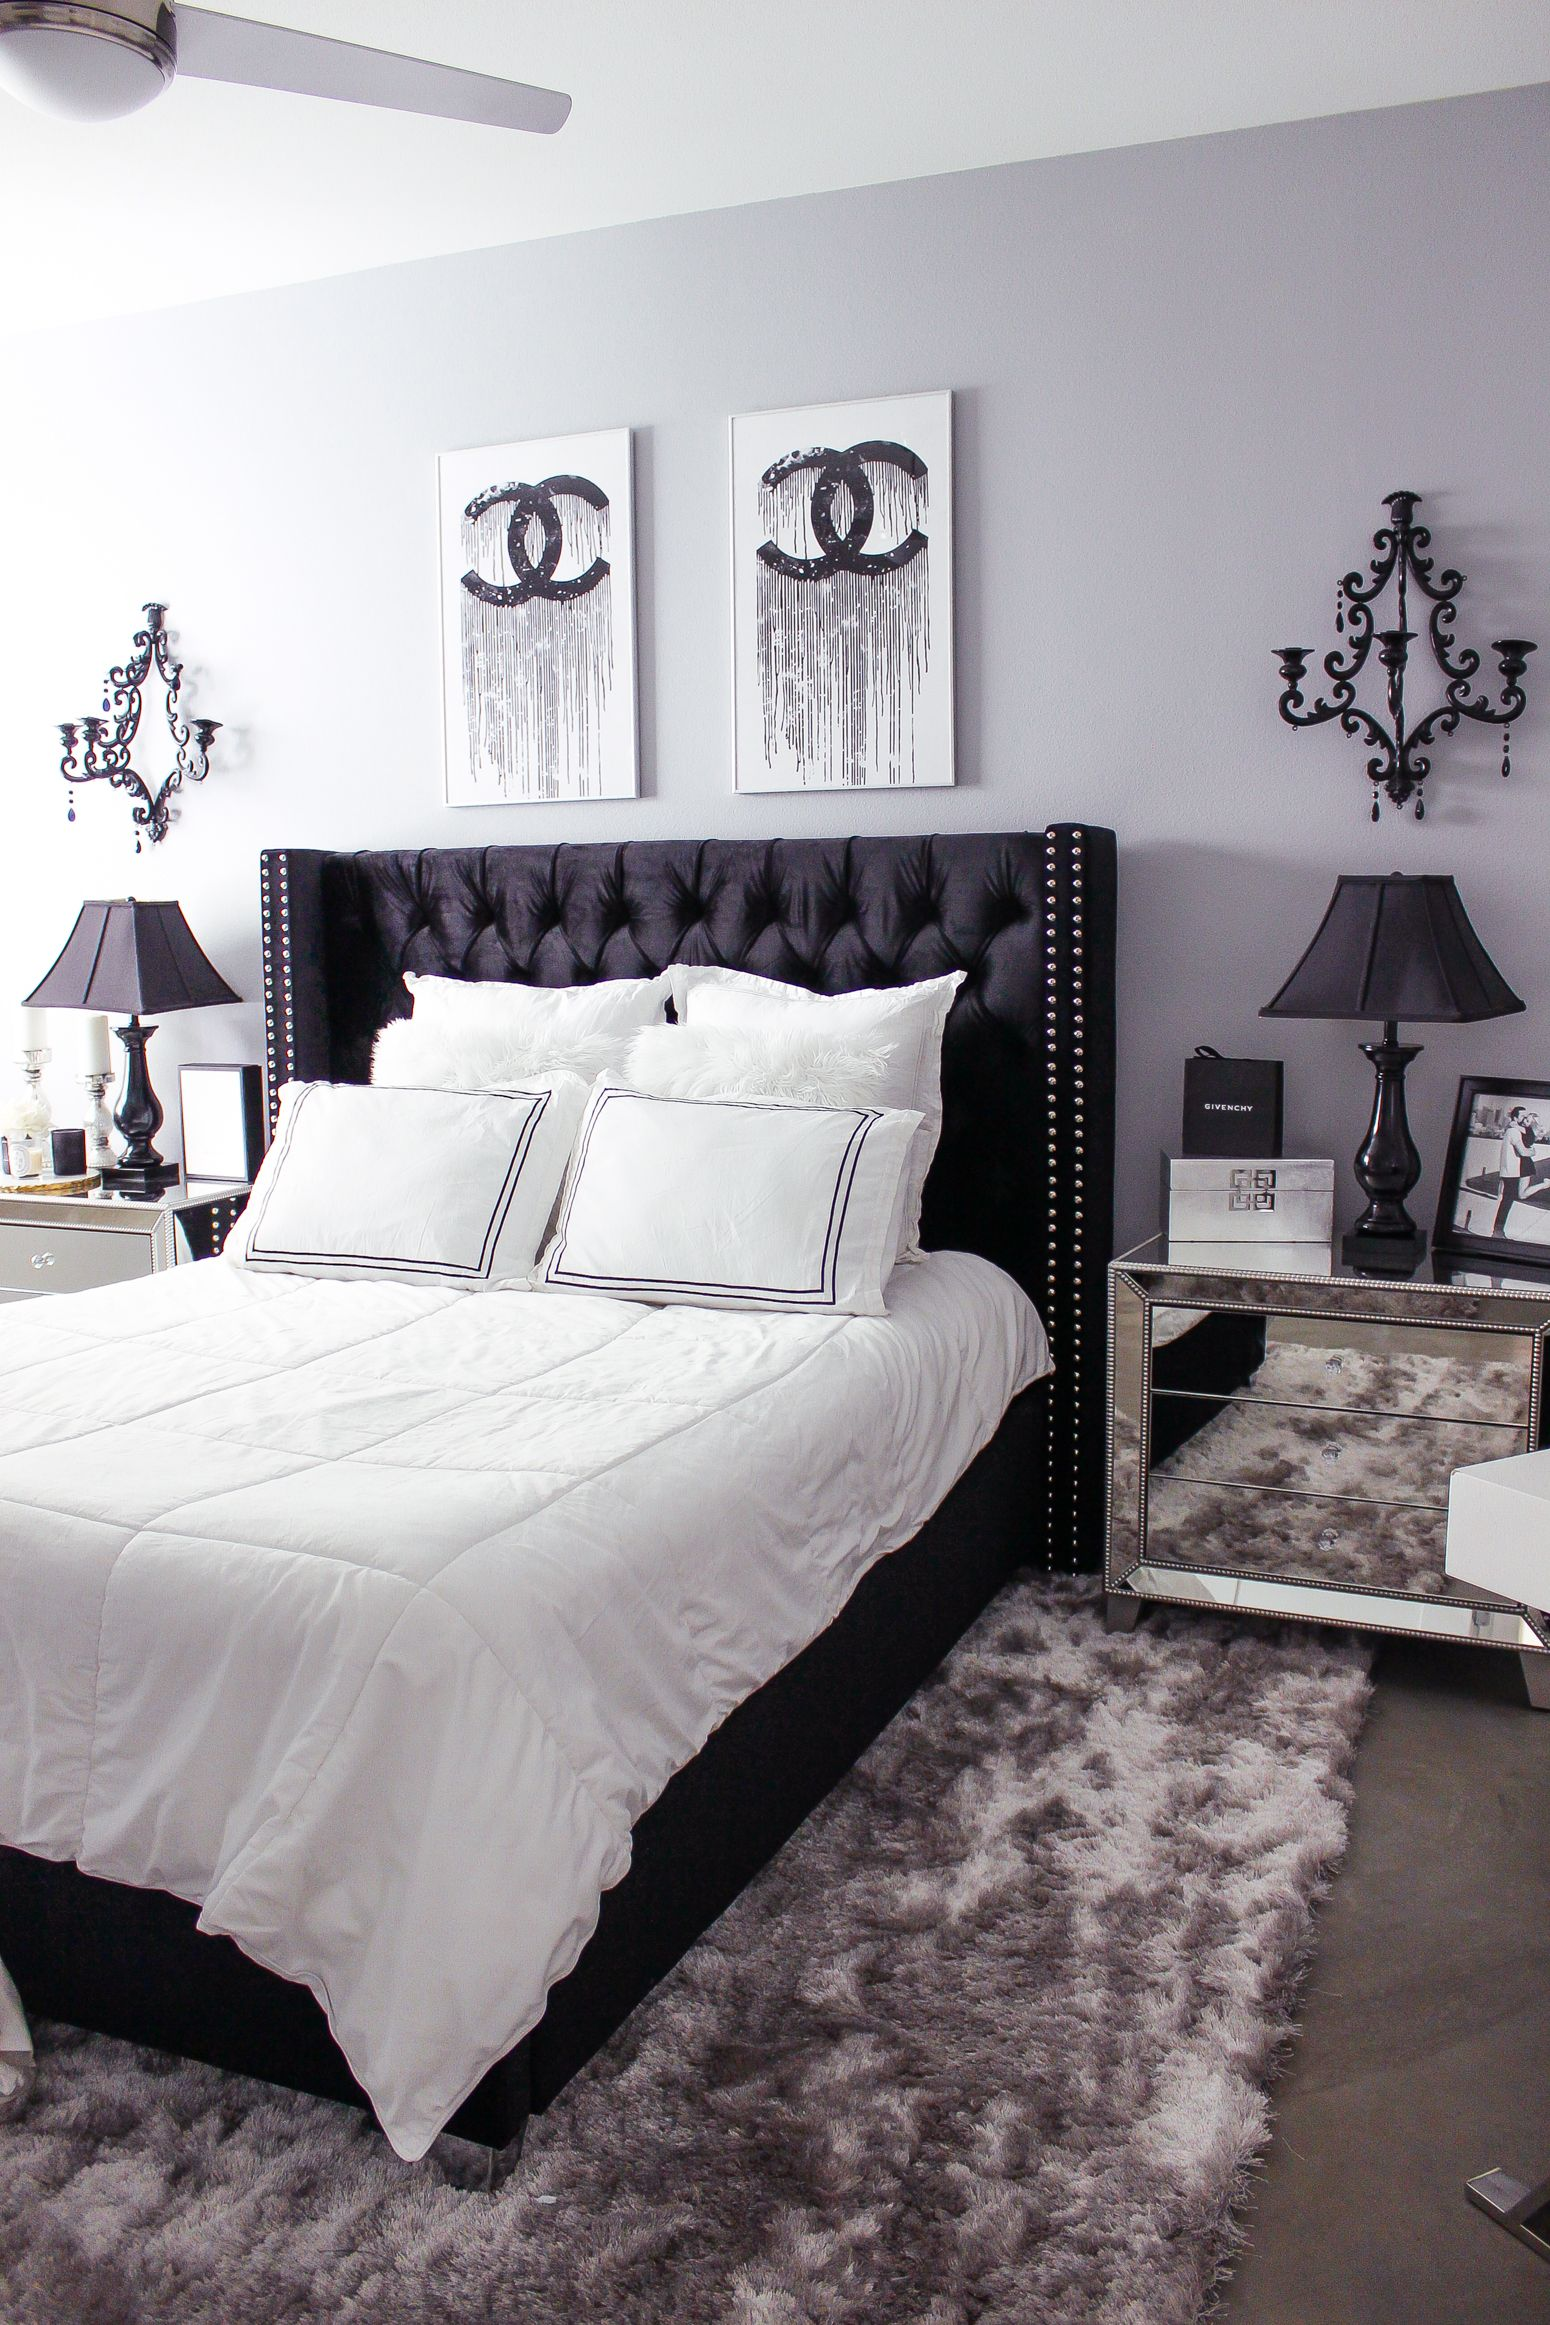 Black U0026 White Bedroom Decor | Chic, Glam Bedroom Decor | Blondie In The  City | Hayley Larue Bedroom Decor | Chanel Decor